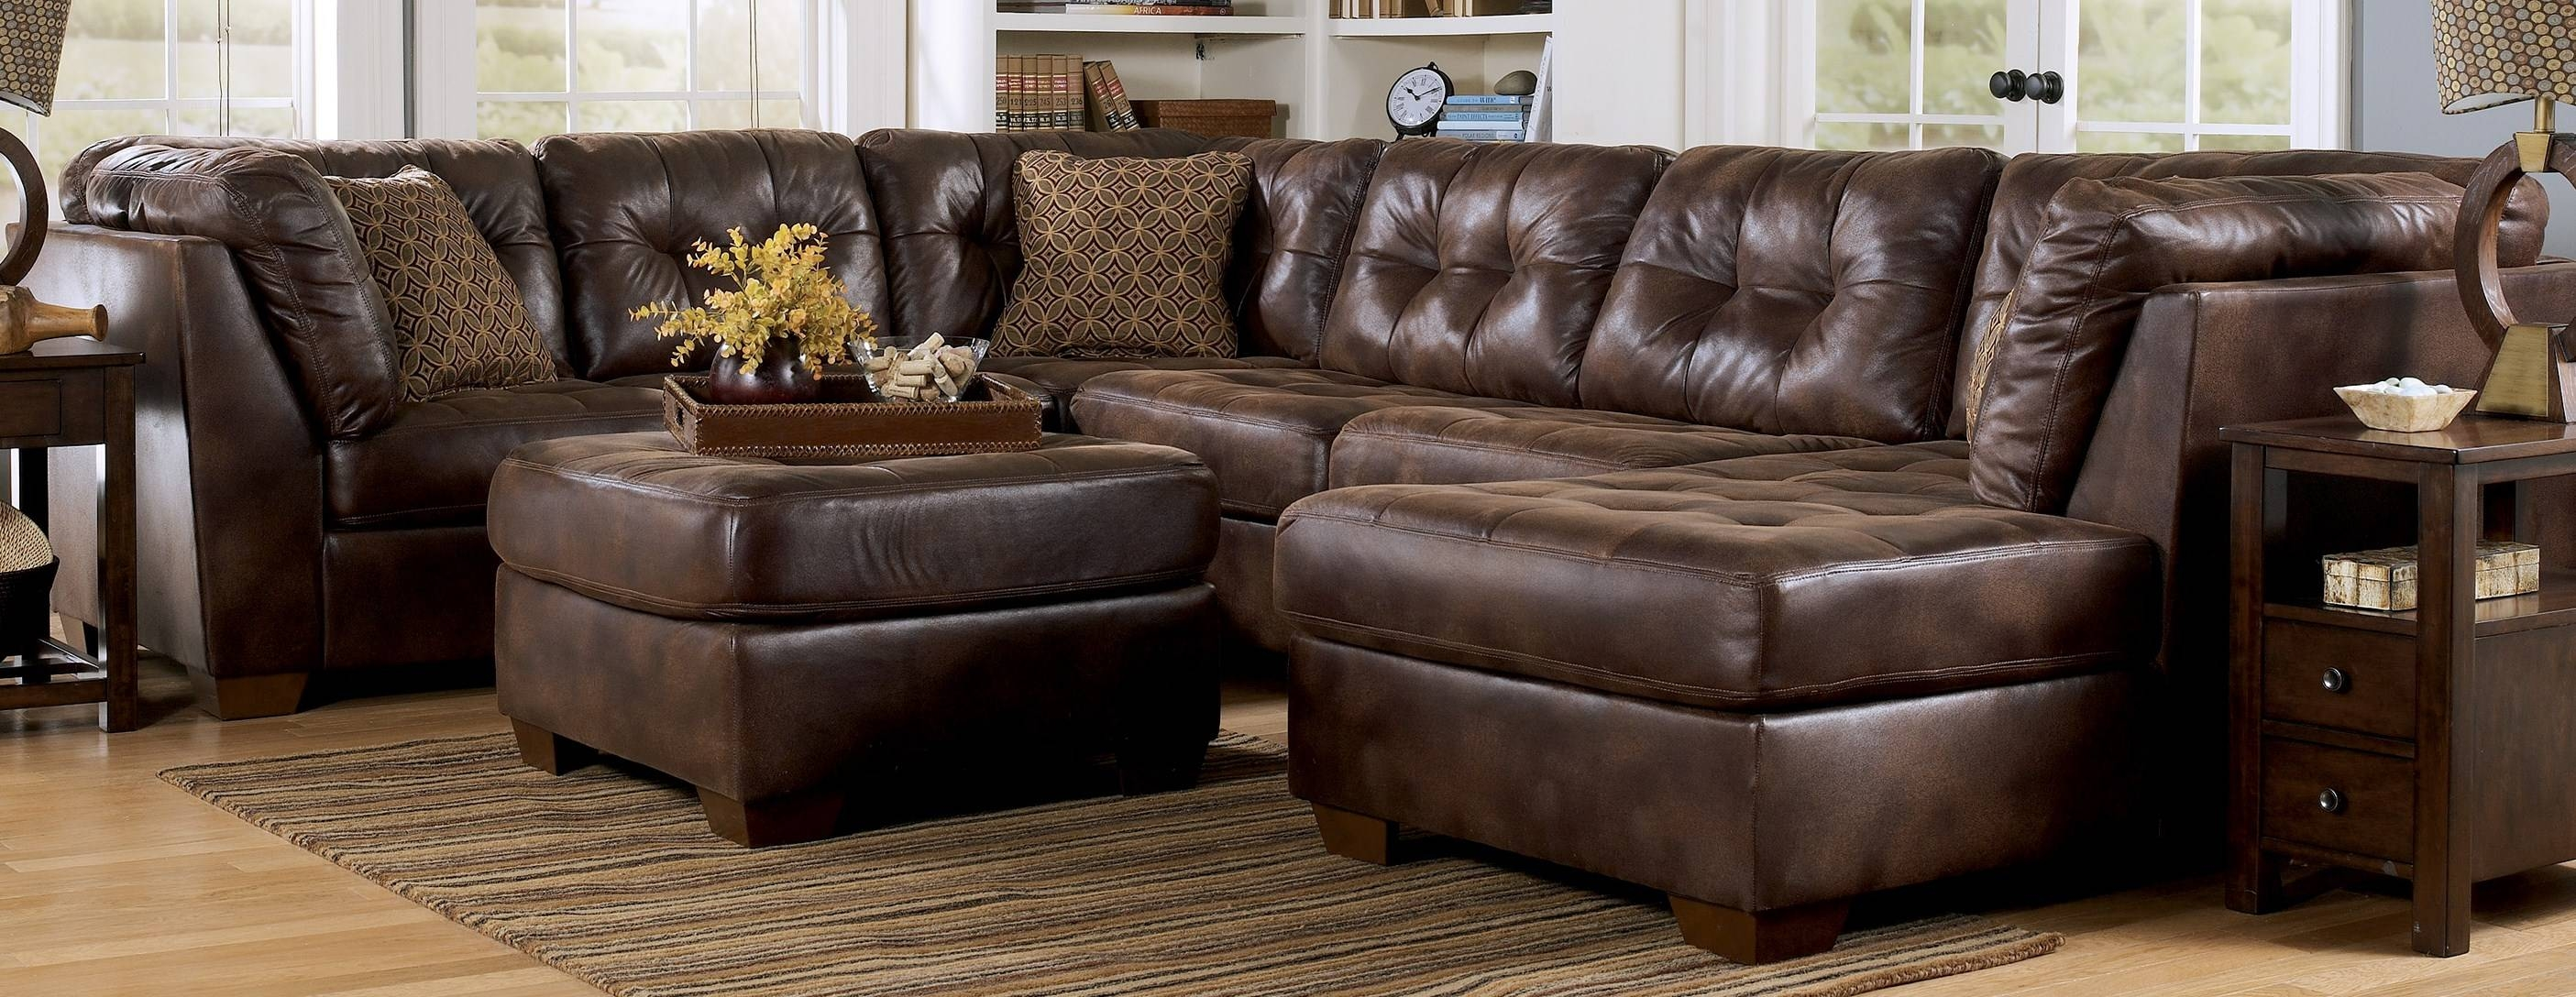 Decorating: Brown Leather Sectional Sleeper Sofa Plus Ottoman On with Sectional Sofa With Oversized Ottoman (Image 2 of 30)